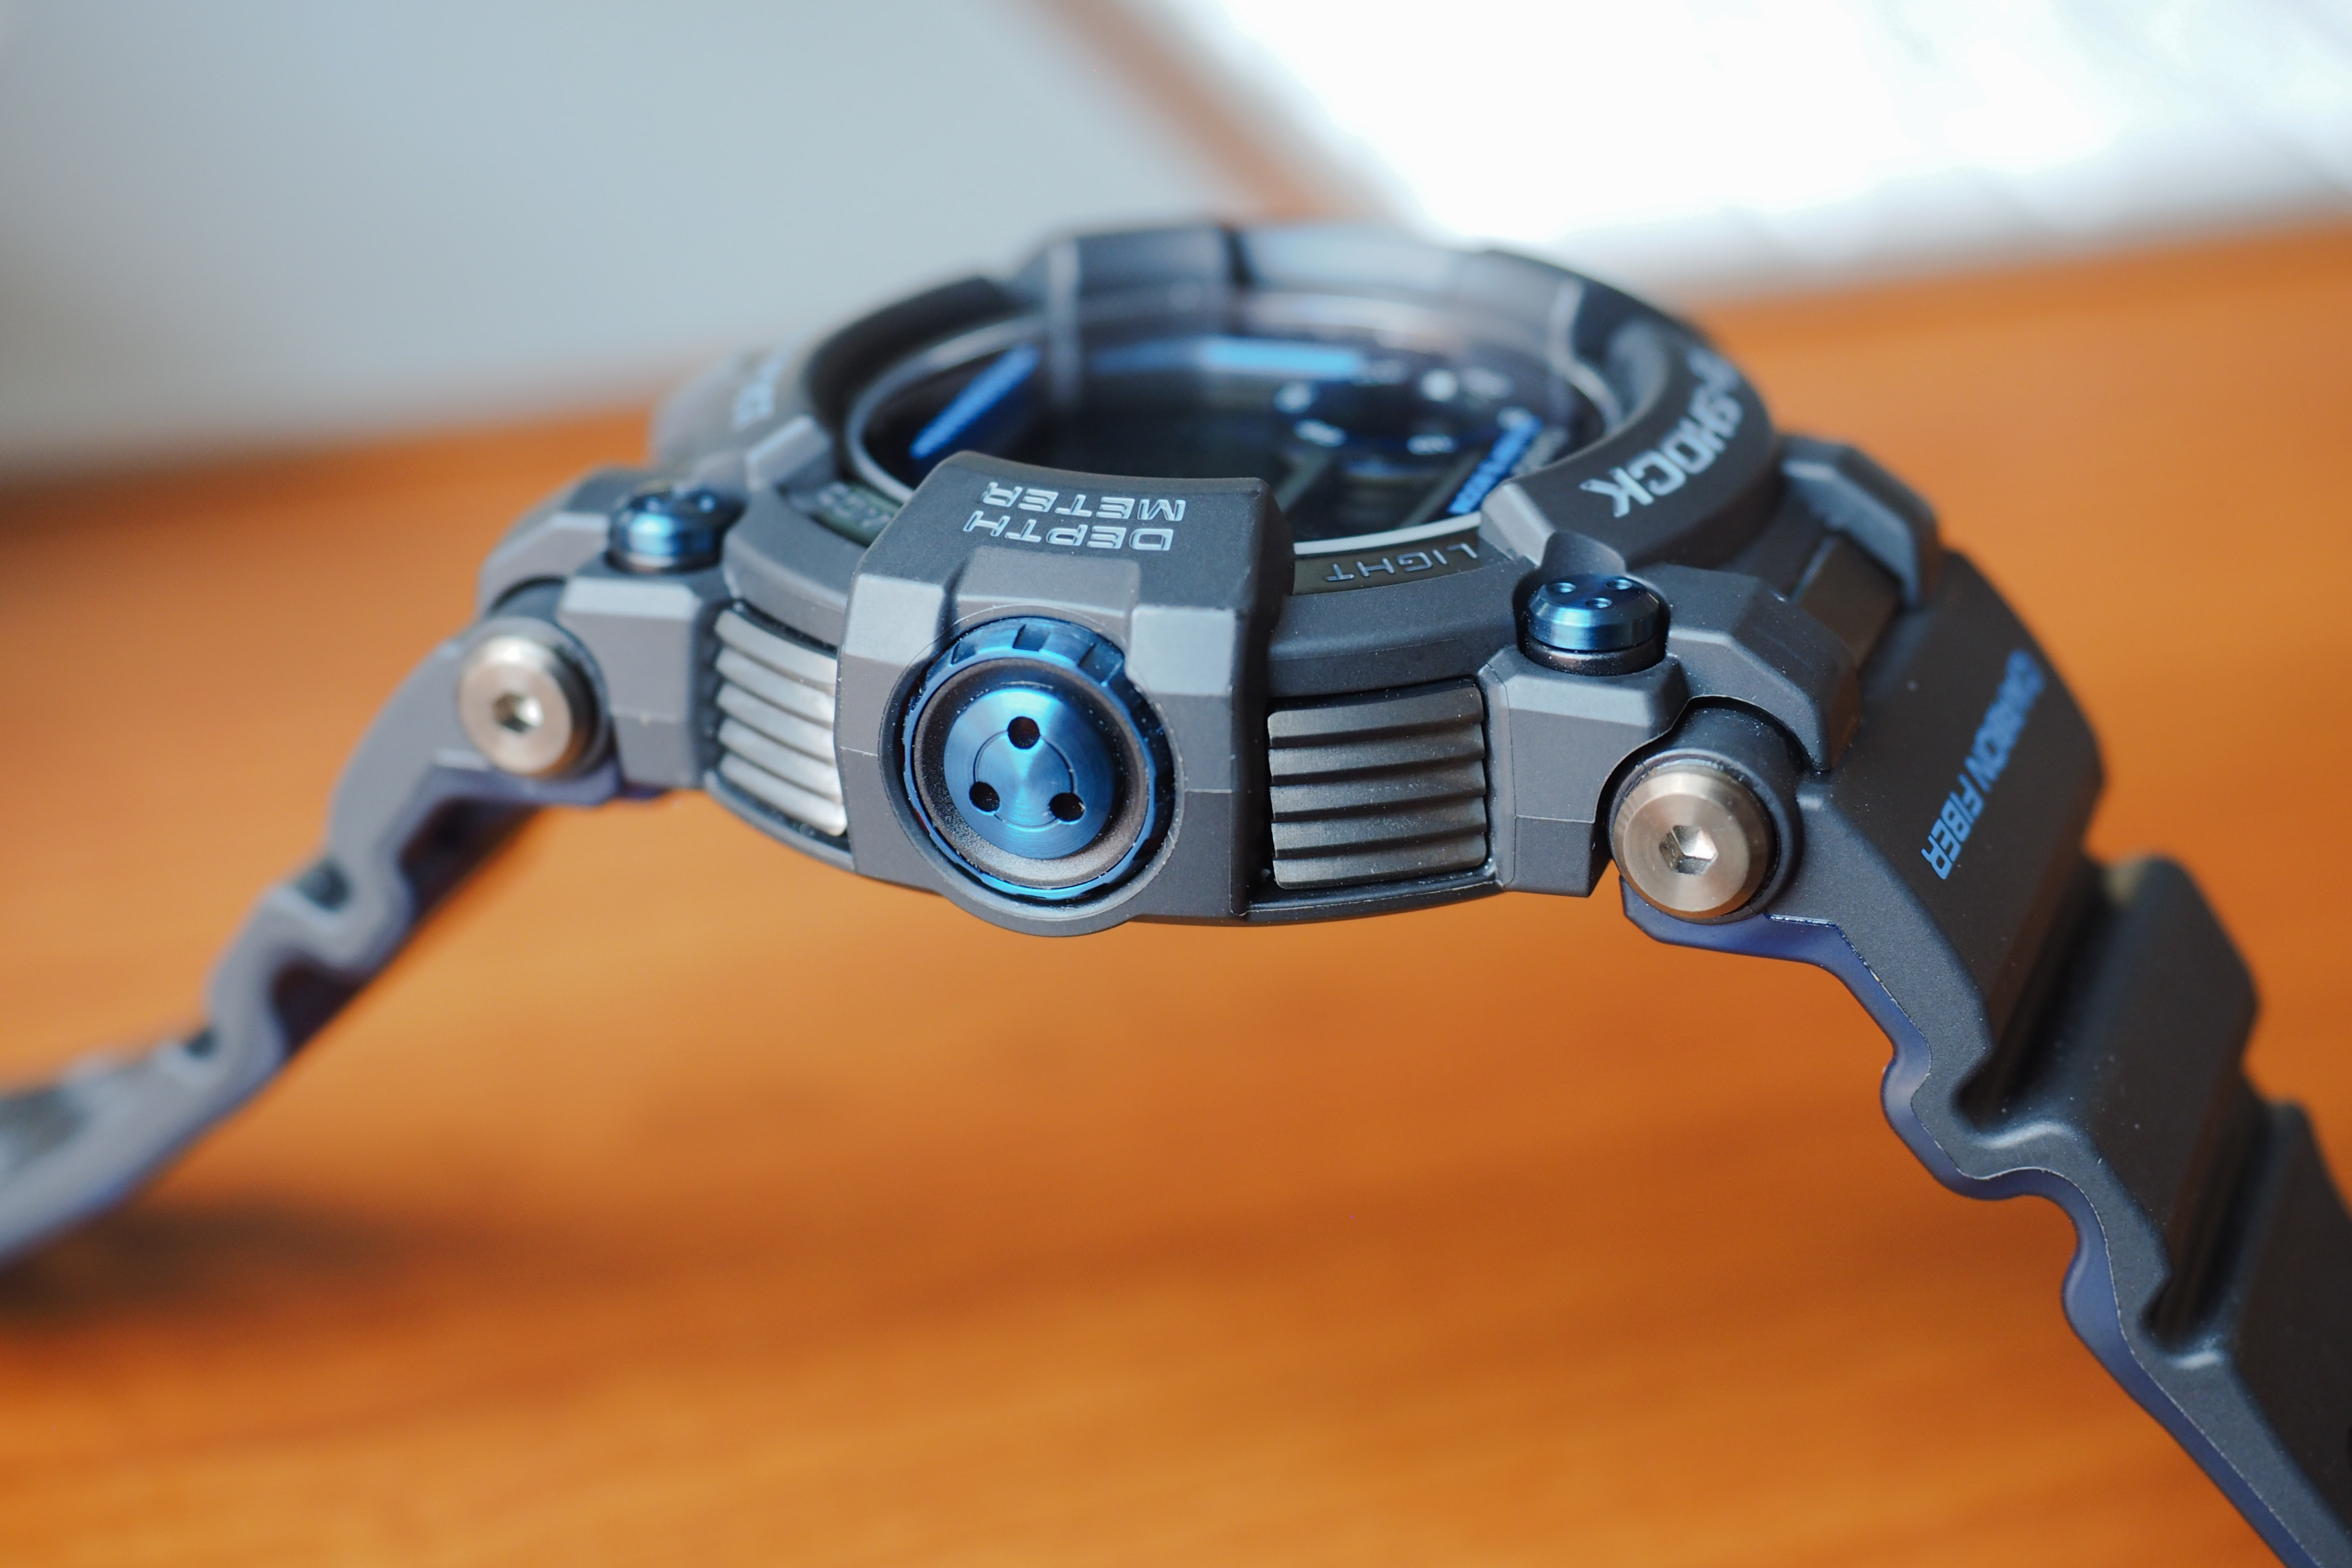 G-Shock Frogman GWF-D1000B depth gauge A Week On The Wrist: The Casio 'Master Of G' G-Shock Frogman GWF-D1000B, A Great Watch To Wear For Punching A T. Rex A Week On The Wrist: The Casio 'Master Of G' G-Shock Frogman GWF-D1000B, A Great Watch To Wear For Punching A T. Rex P1091531